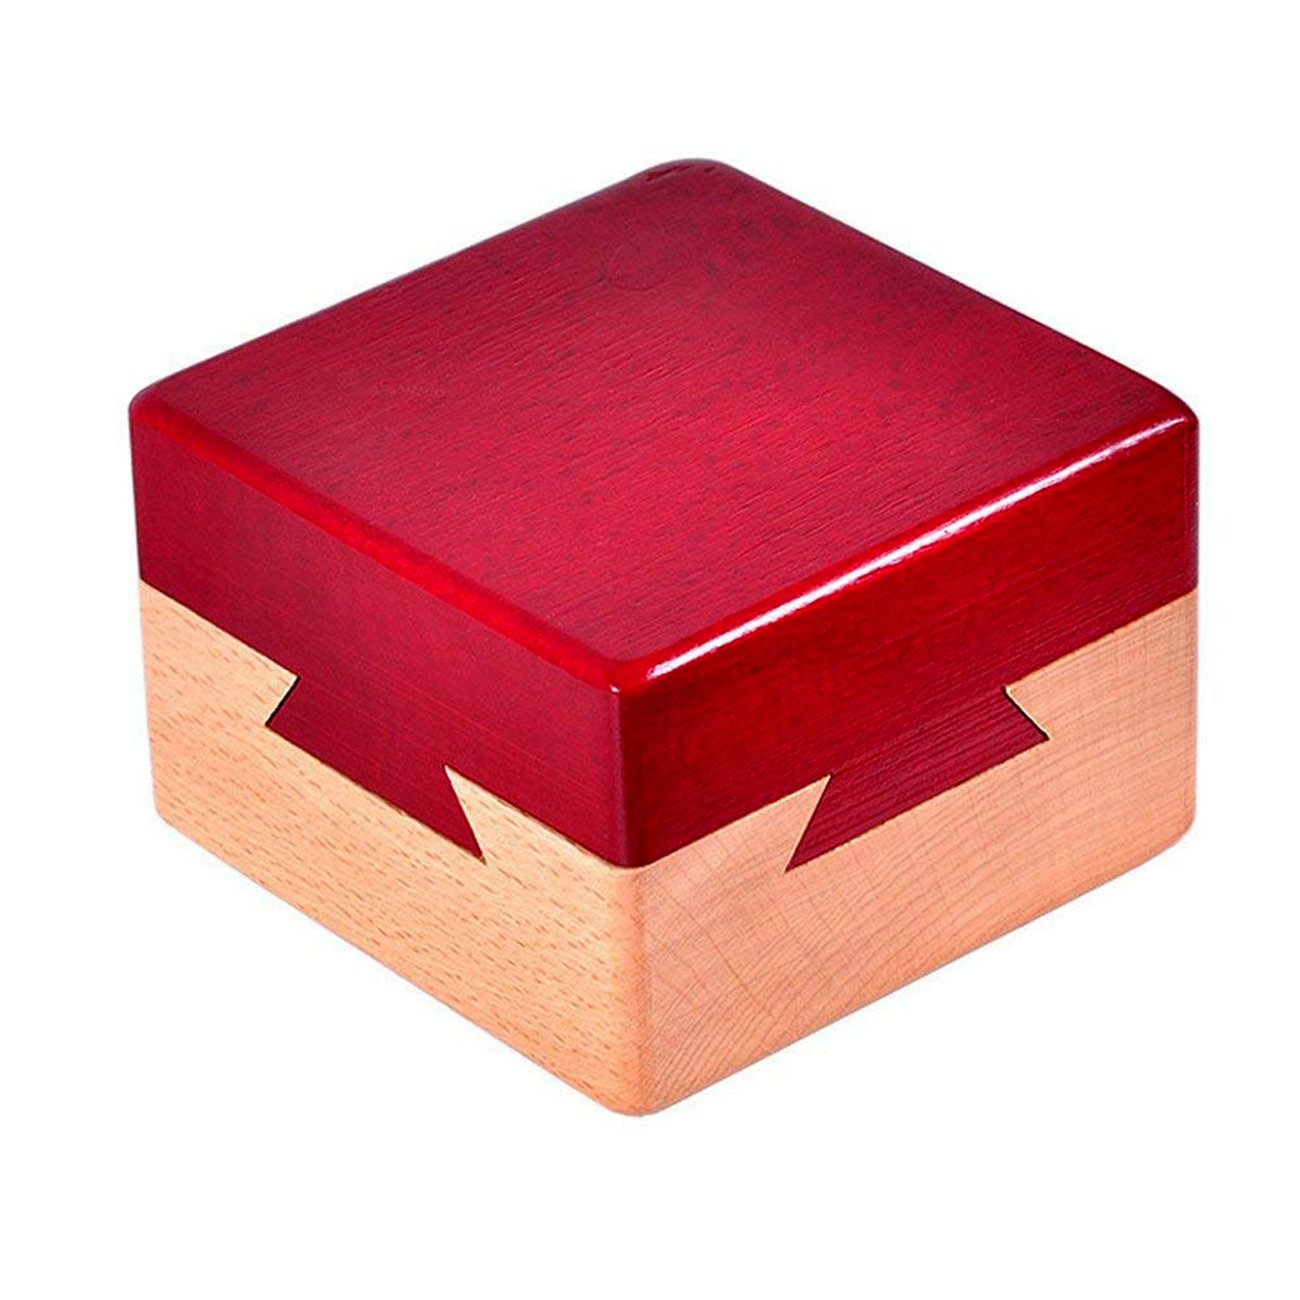 Impossible Dovetail Box Mini 3D Brain Teaser Wooden Magic Drawers Gift Jewelery Box Puzzle Toy